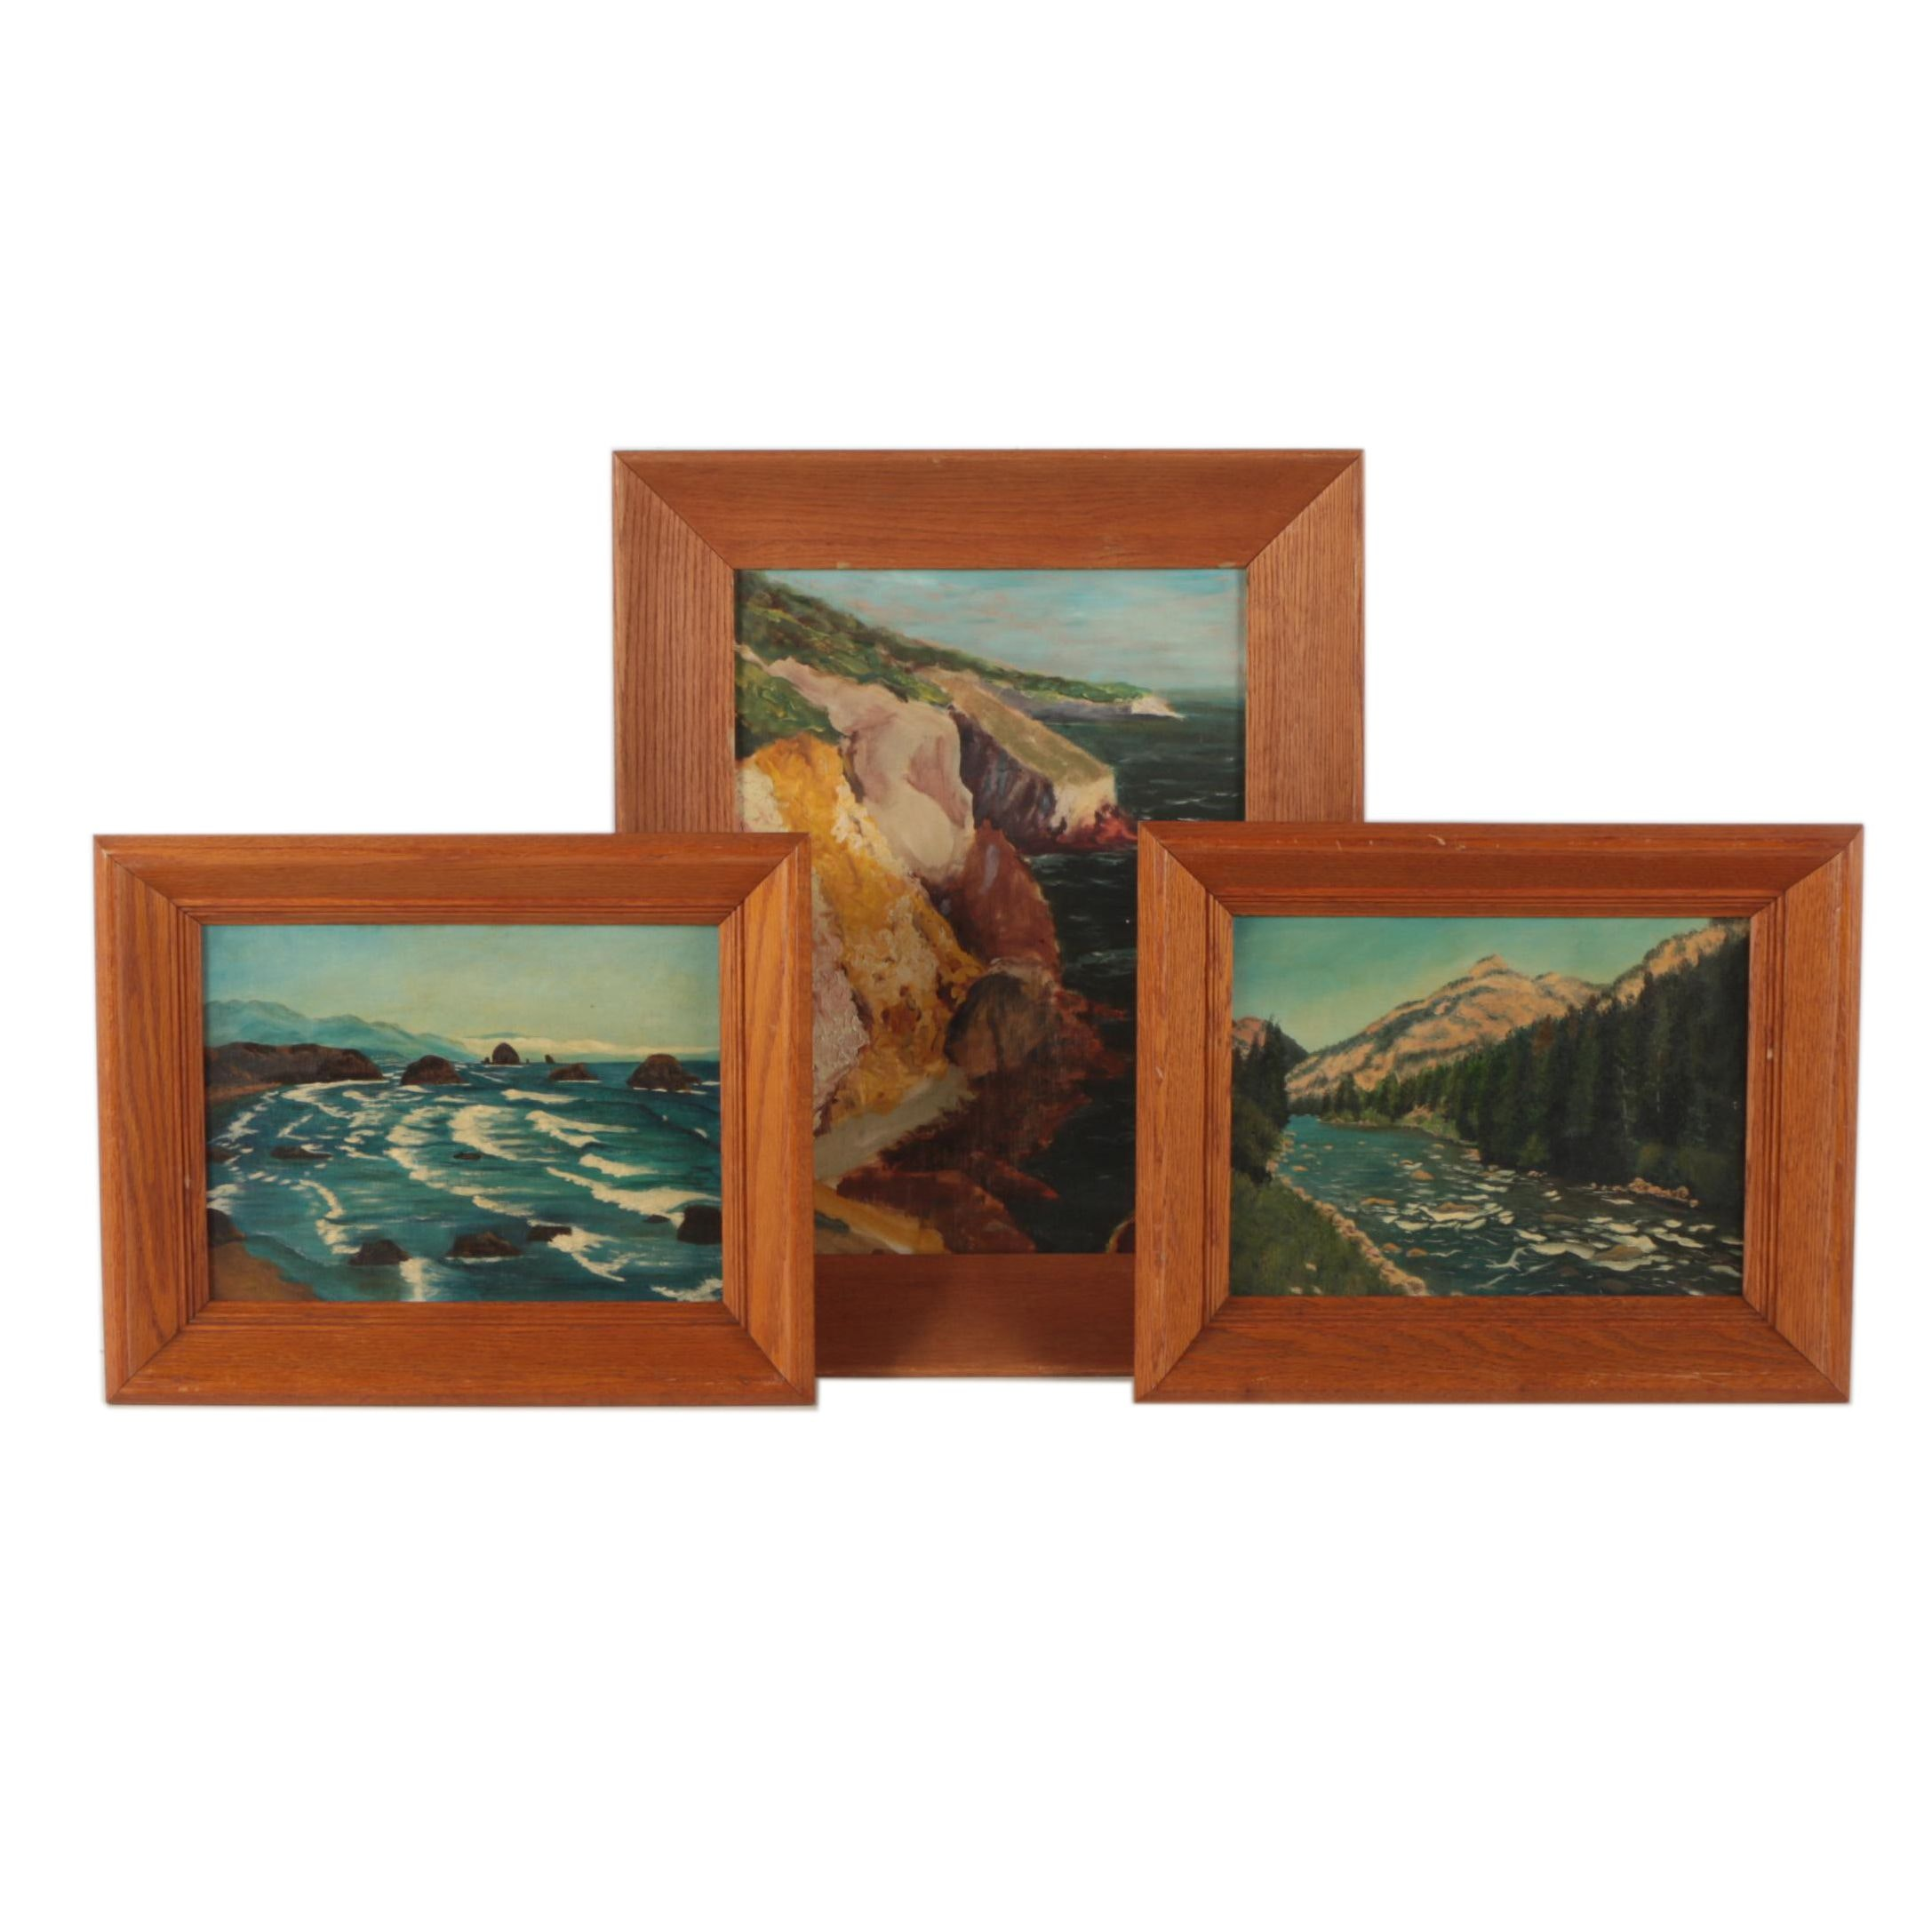 Two 1957 Stanhope Oil Landscape Paintings